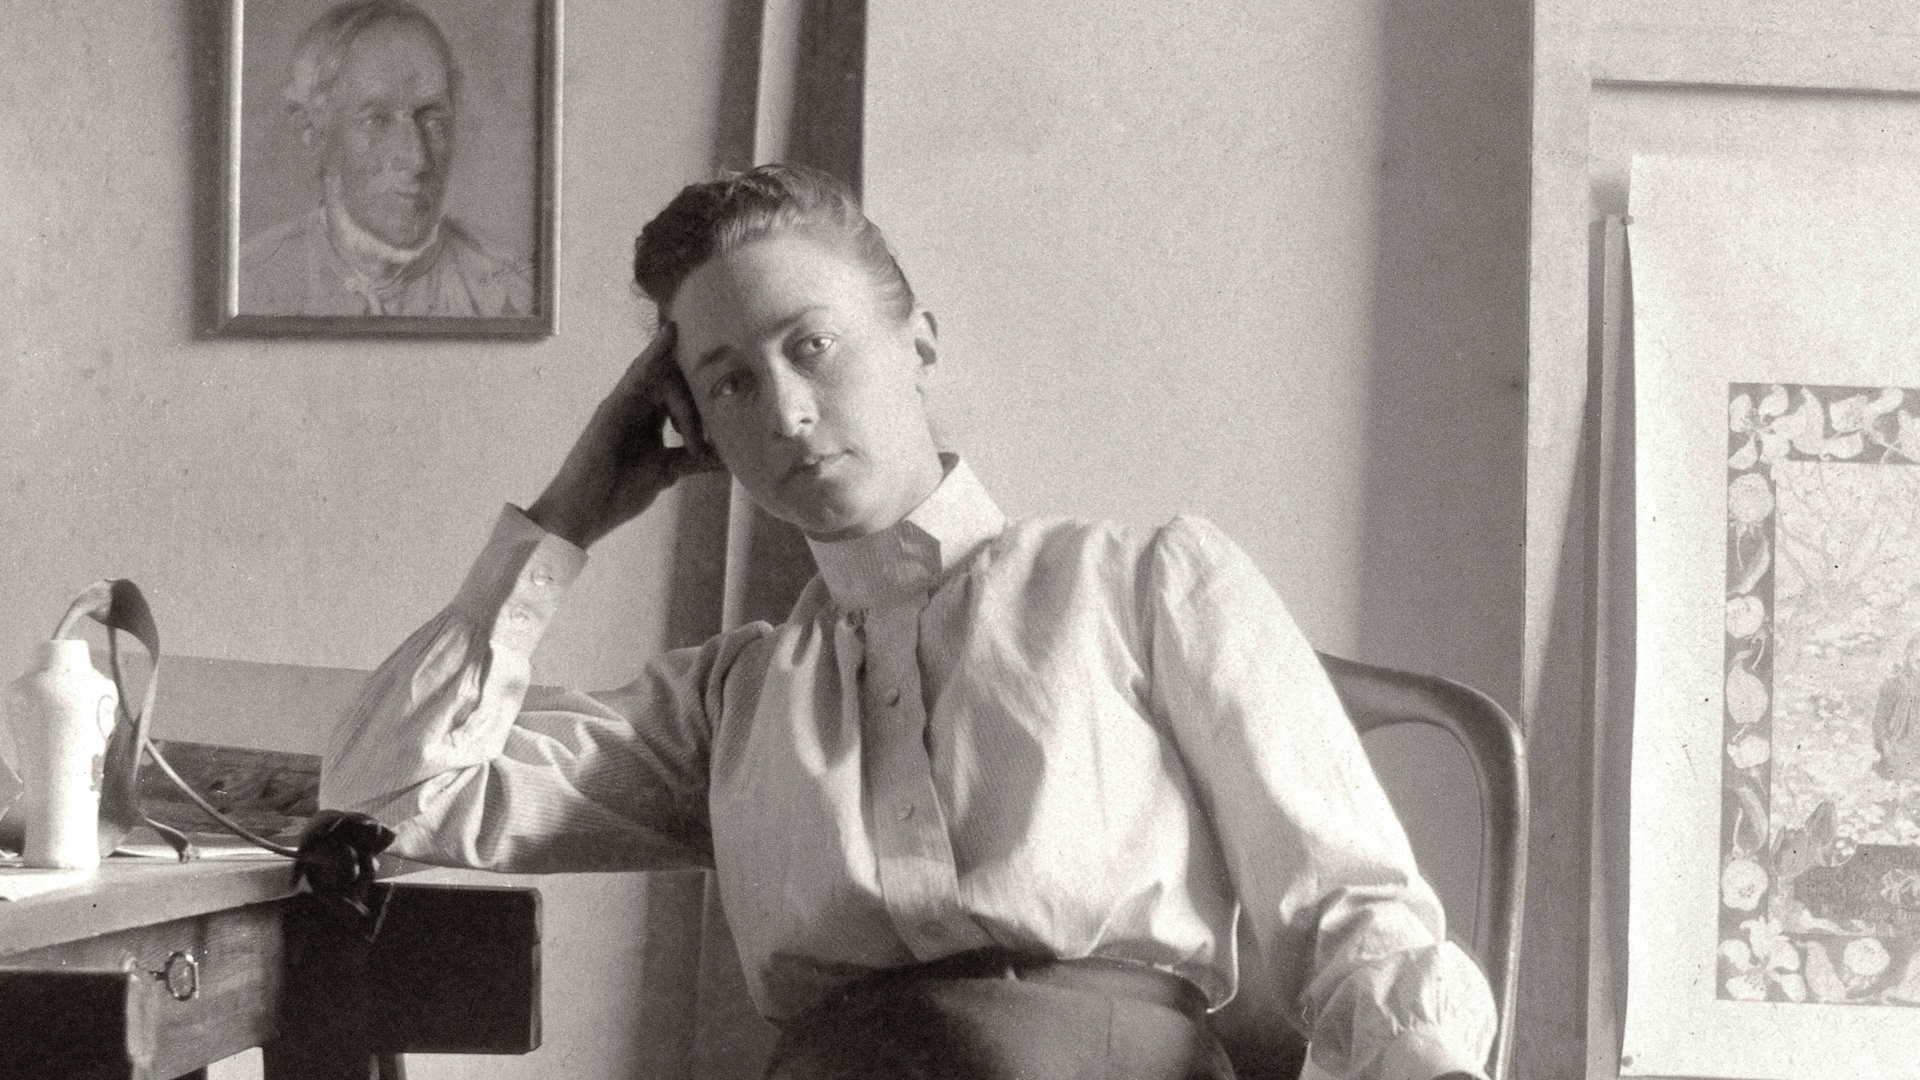 Artist Hilma af Klint in her studio at Hamngatan, Stockholm, circa 1895. Photograph: Courtesy of Stiftelsen Hilma af Klints Verk